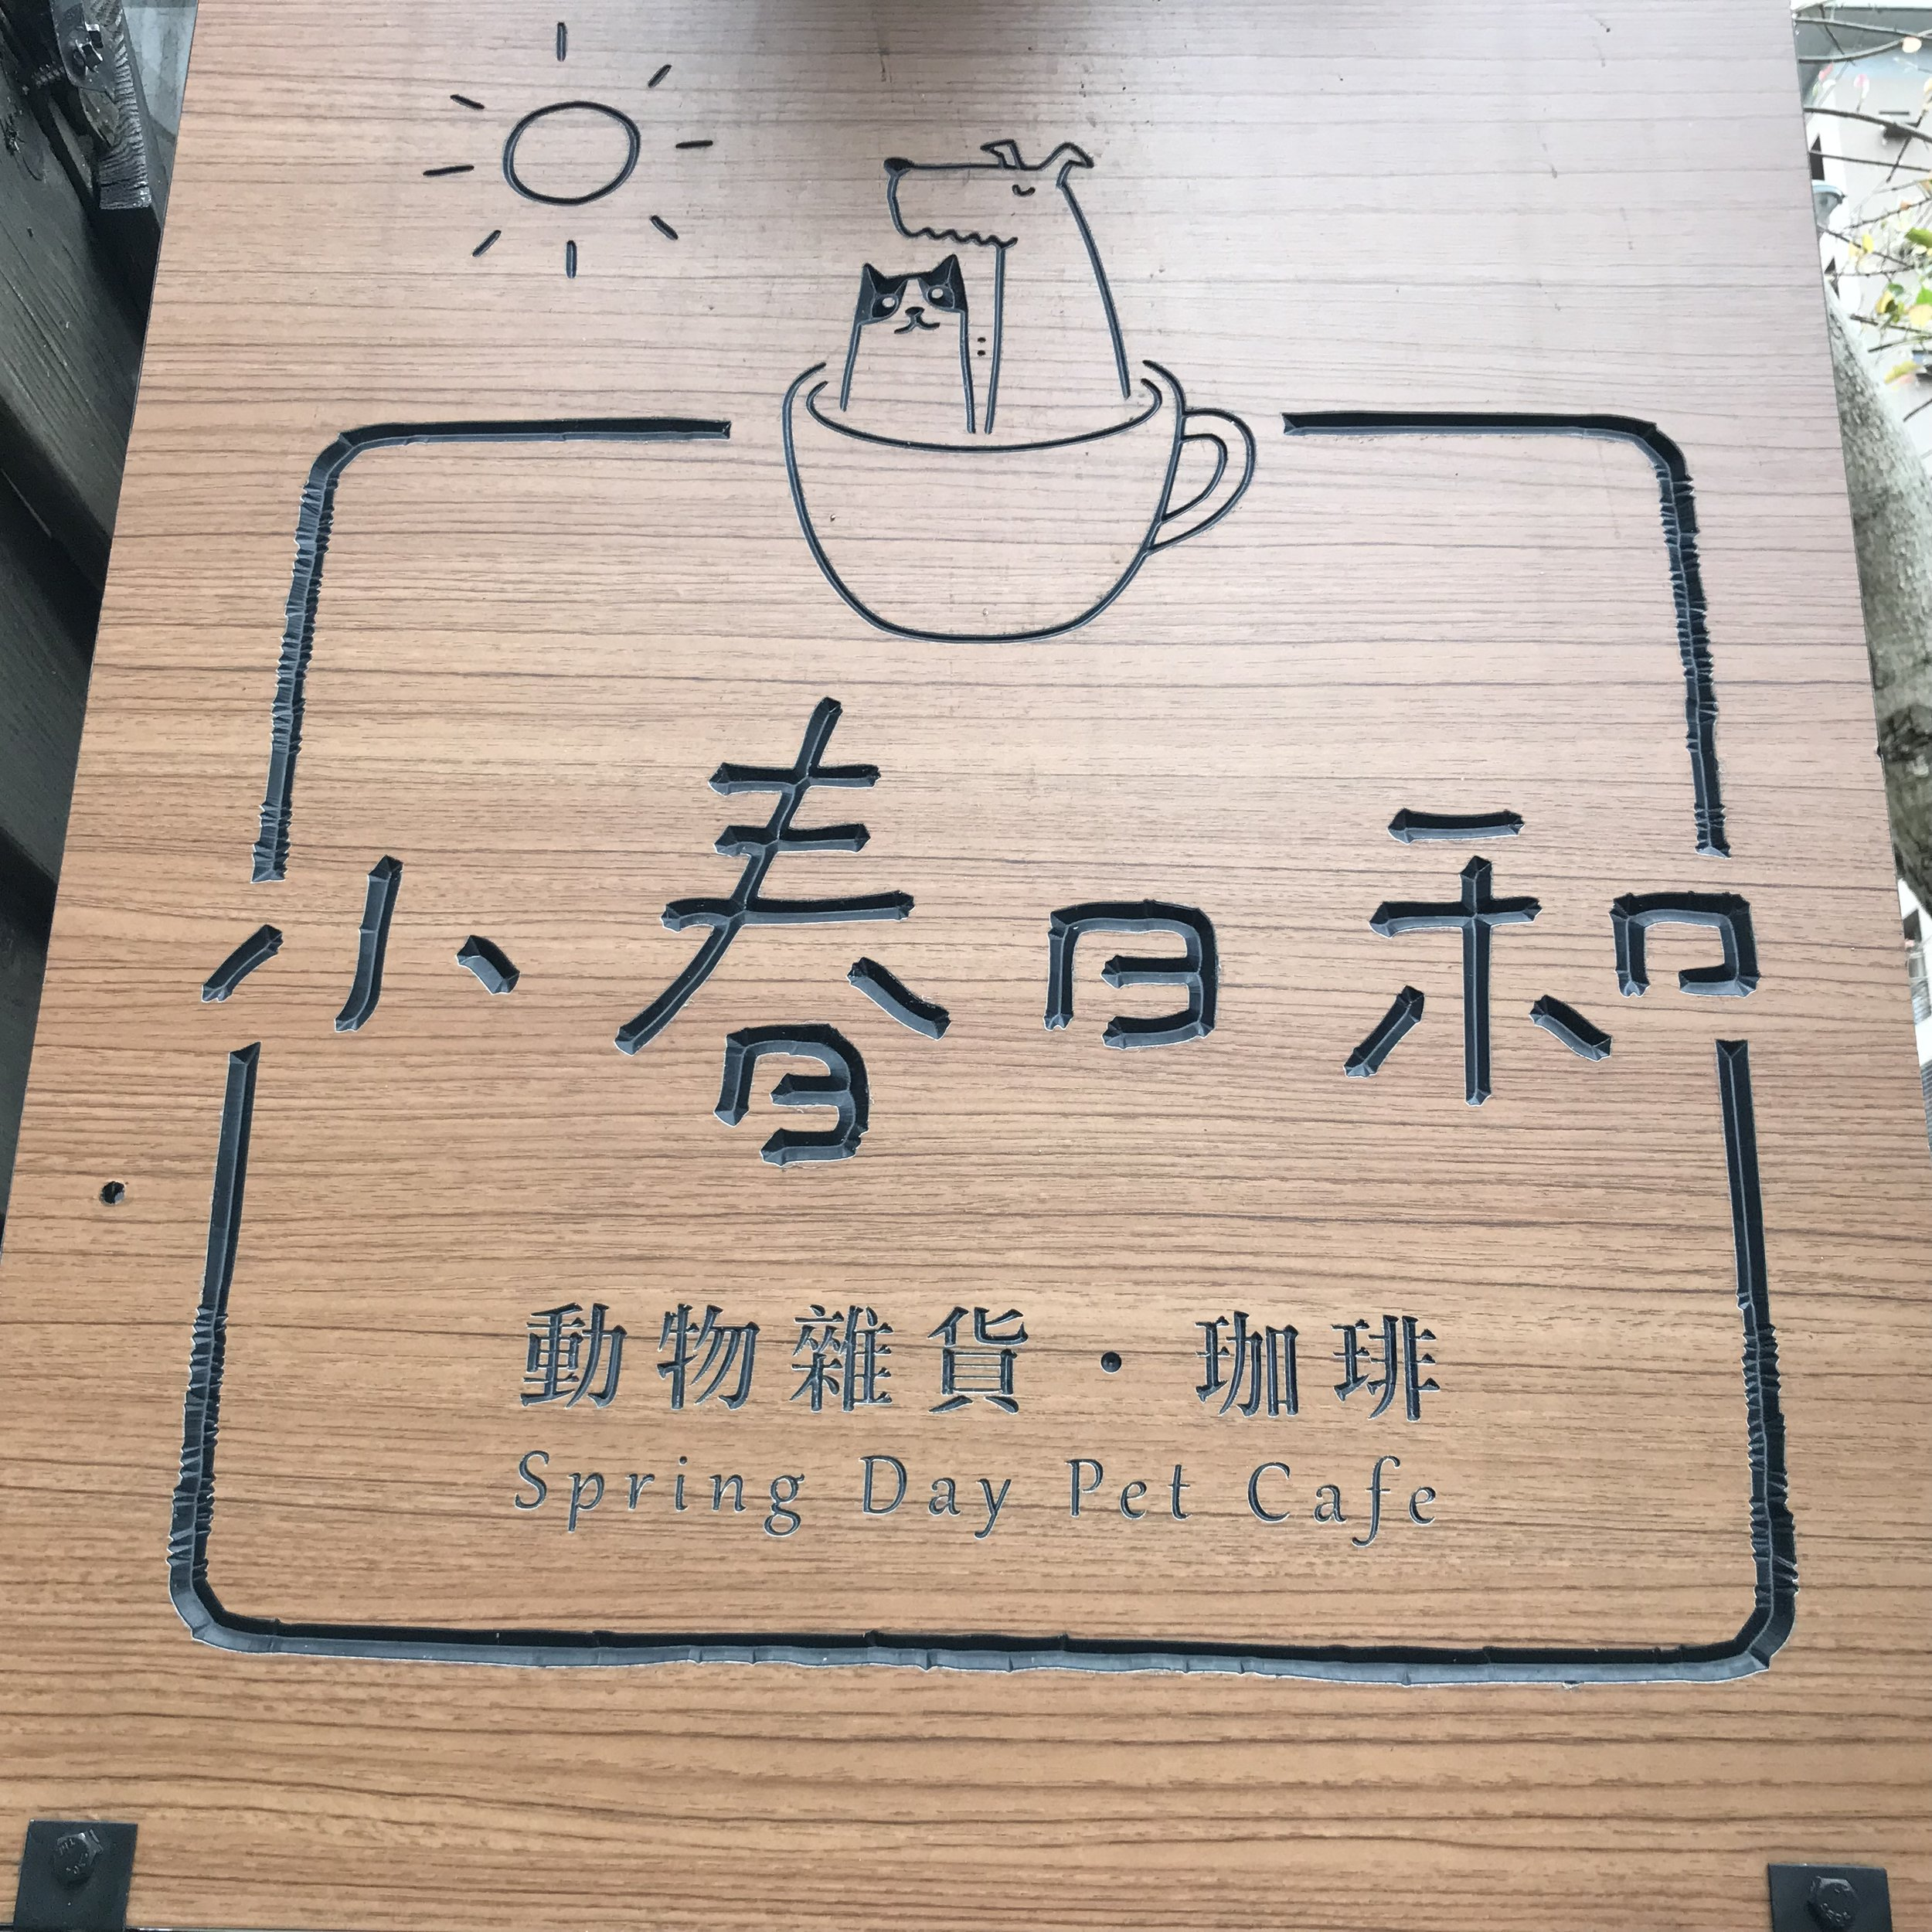 Spring Day Pet Cafe   Taipei, Taiwan